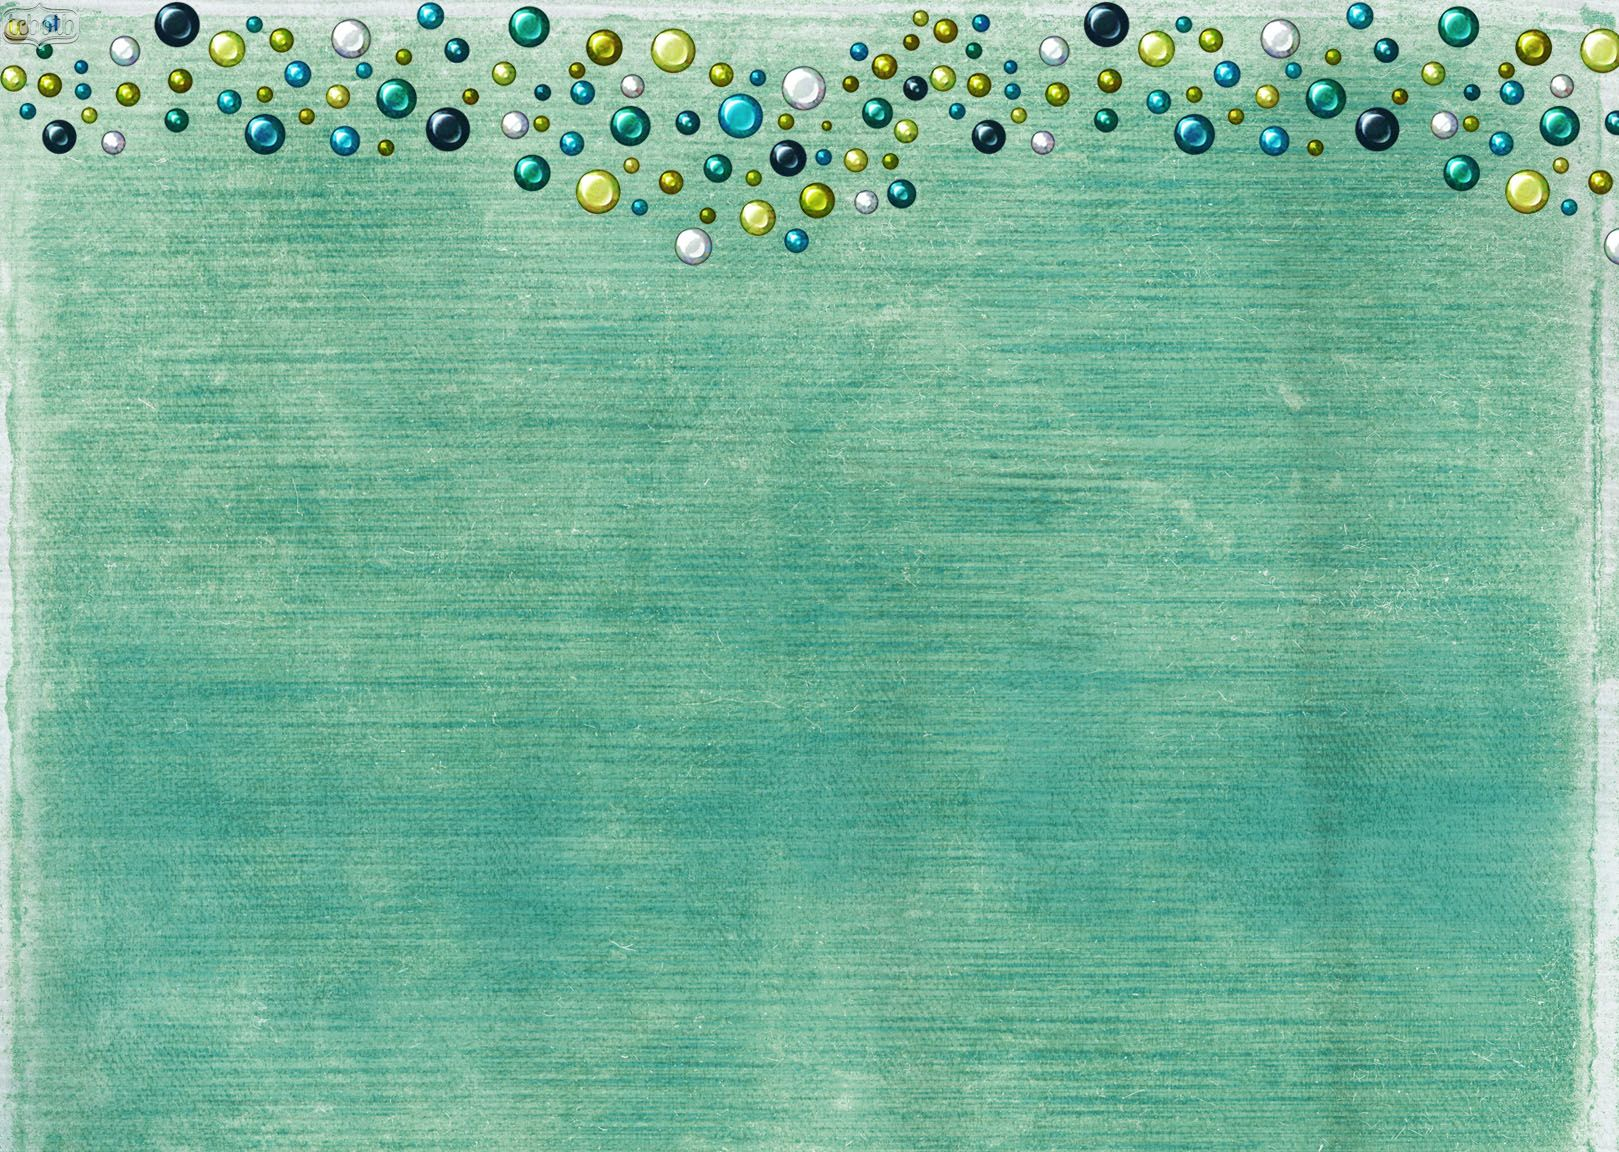 Tumblr Cute Backgrounds Sea glass twitter background ...